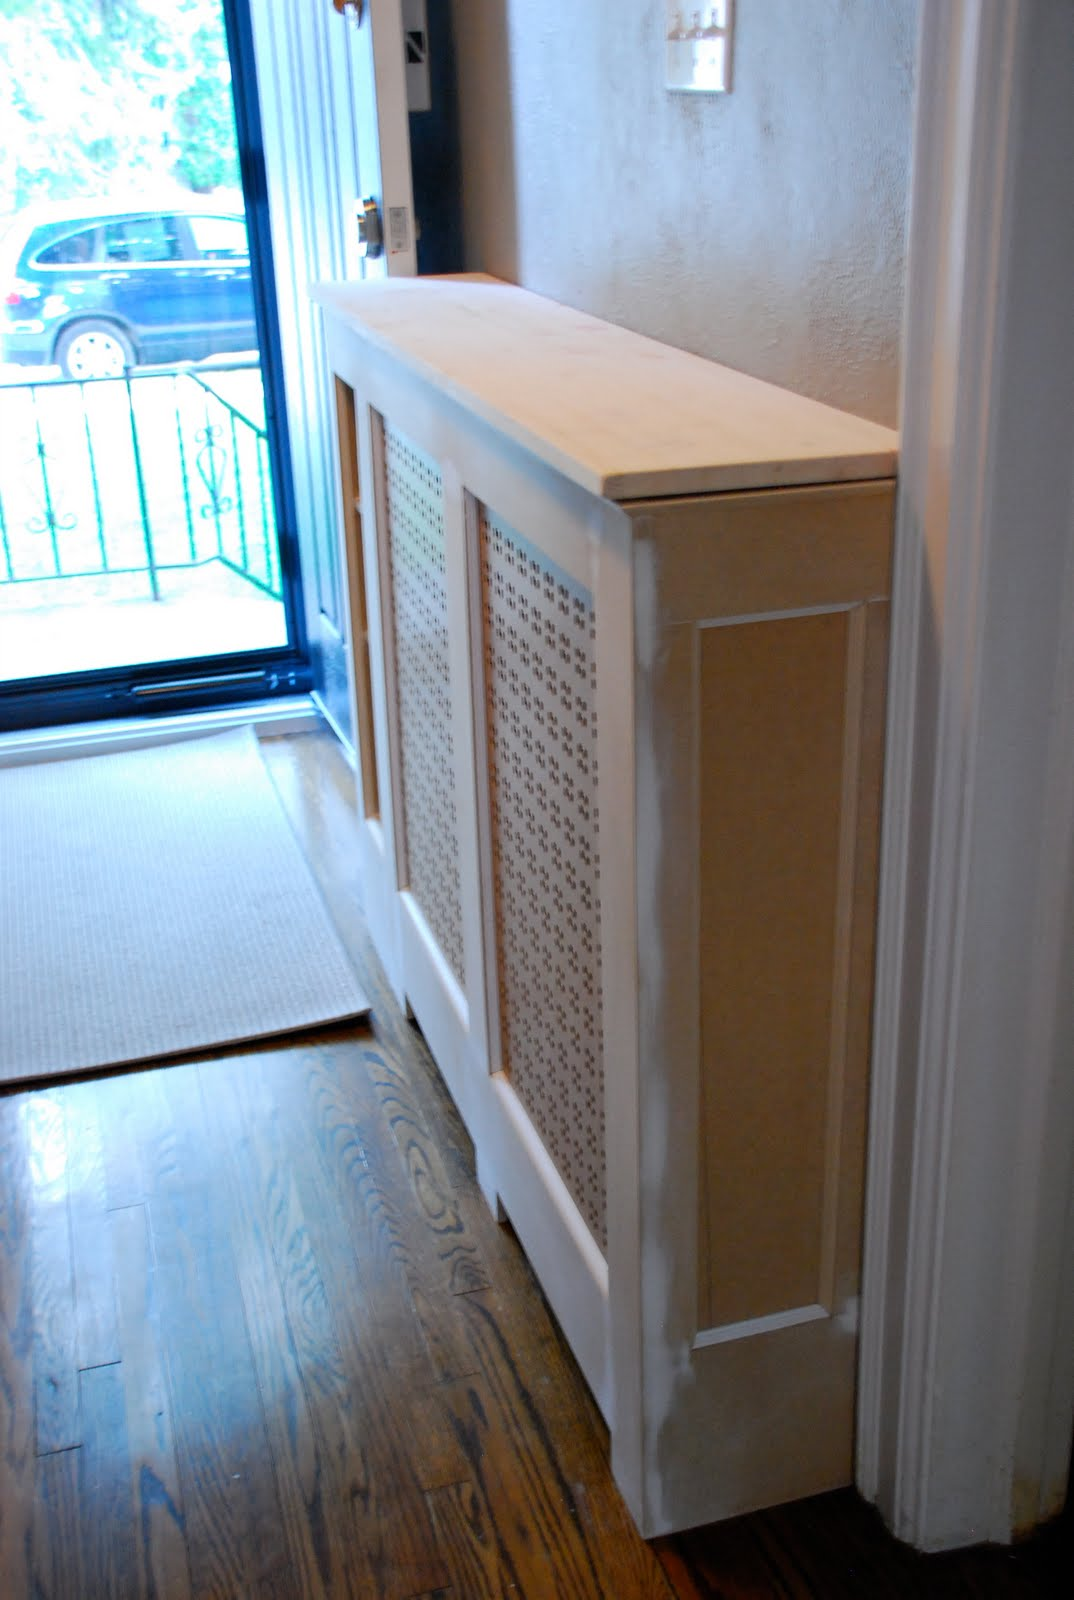 diy radiator cover, how to build a radiator cover, radiator cover ideas